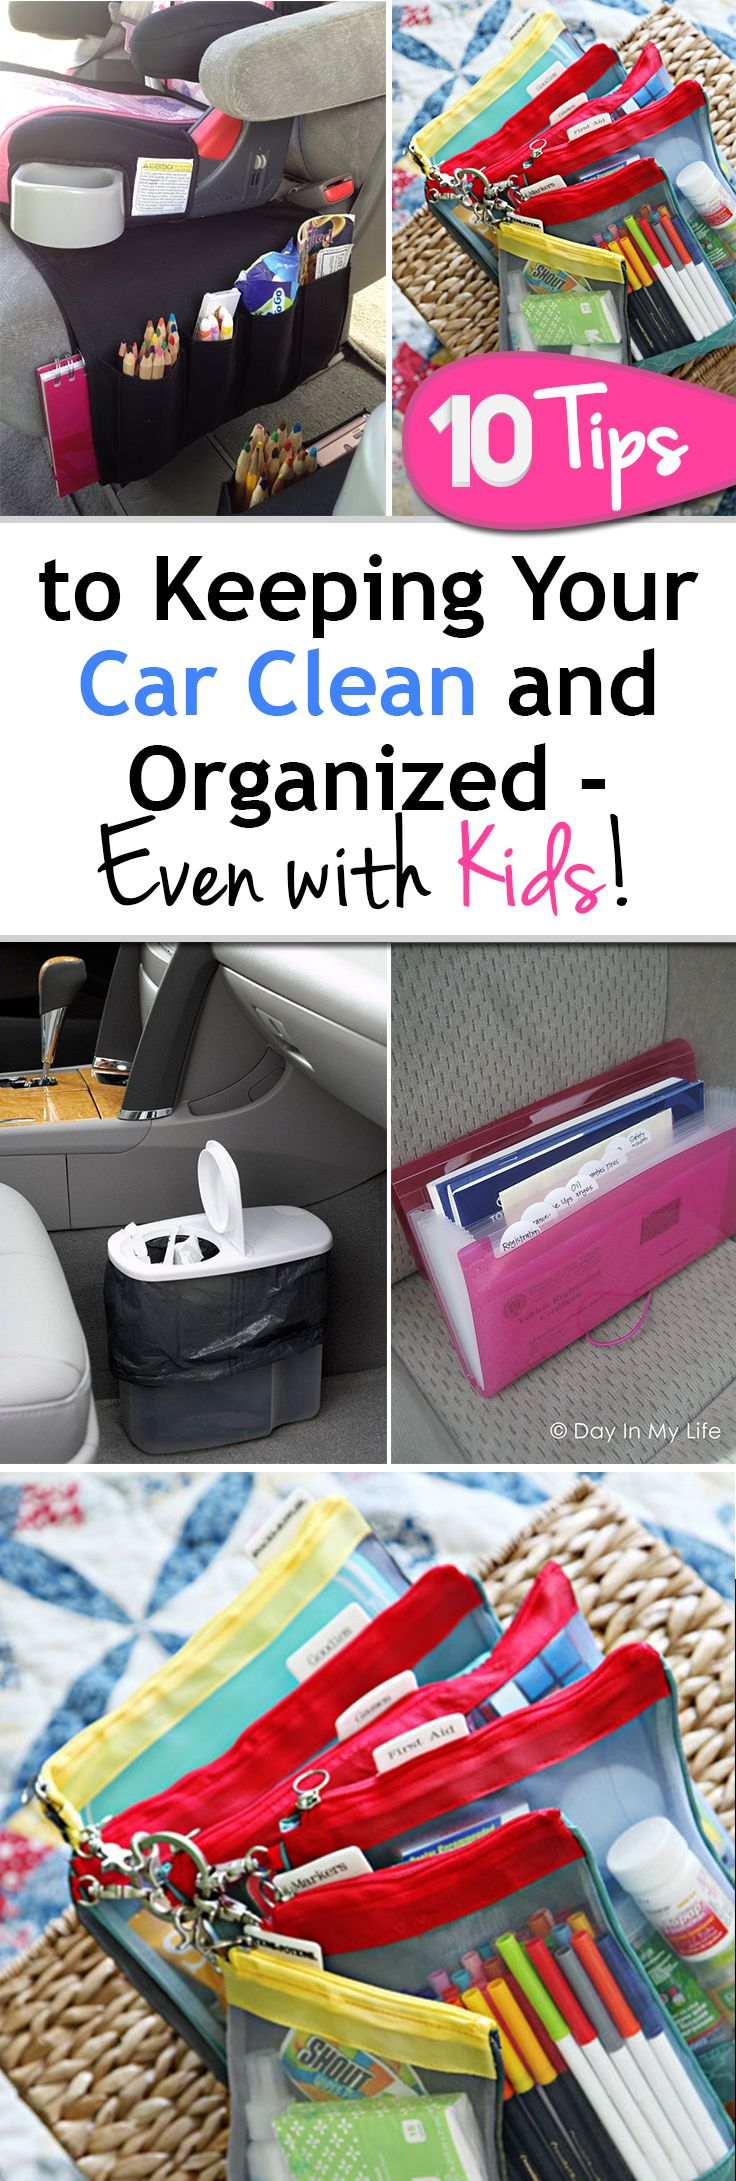 10 Tips to Keeping Your Car Clean and Organized- Even with Kids!! If your car looks anything like mine, it's just piles of random stuff that make perfect sense to me, but definitely look messy. In an effort to motivate myself to clean the car I've organized a list of 10 ways to keep your car organized and clean- even if you throw kids in the mix!